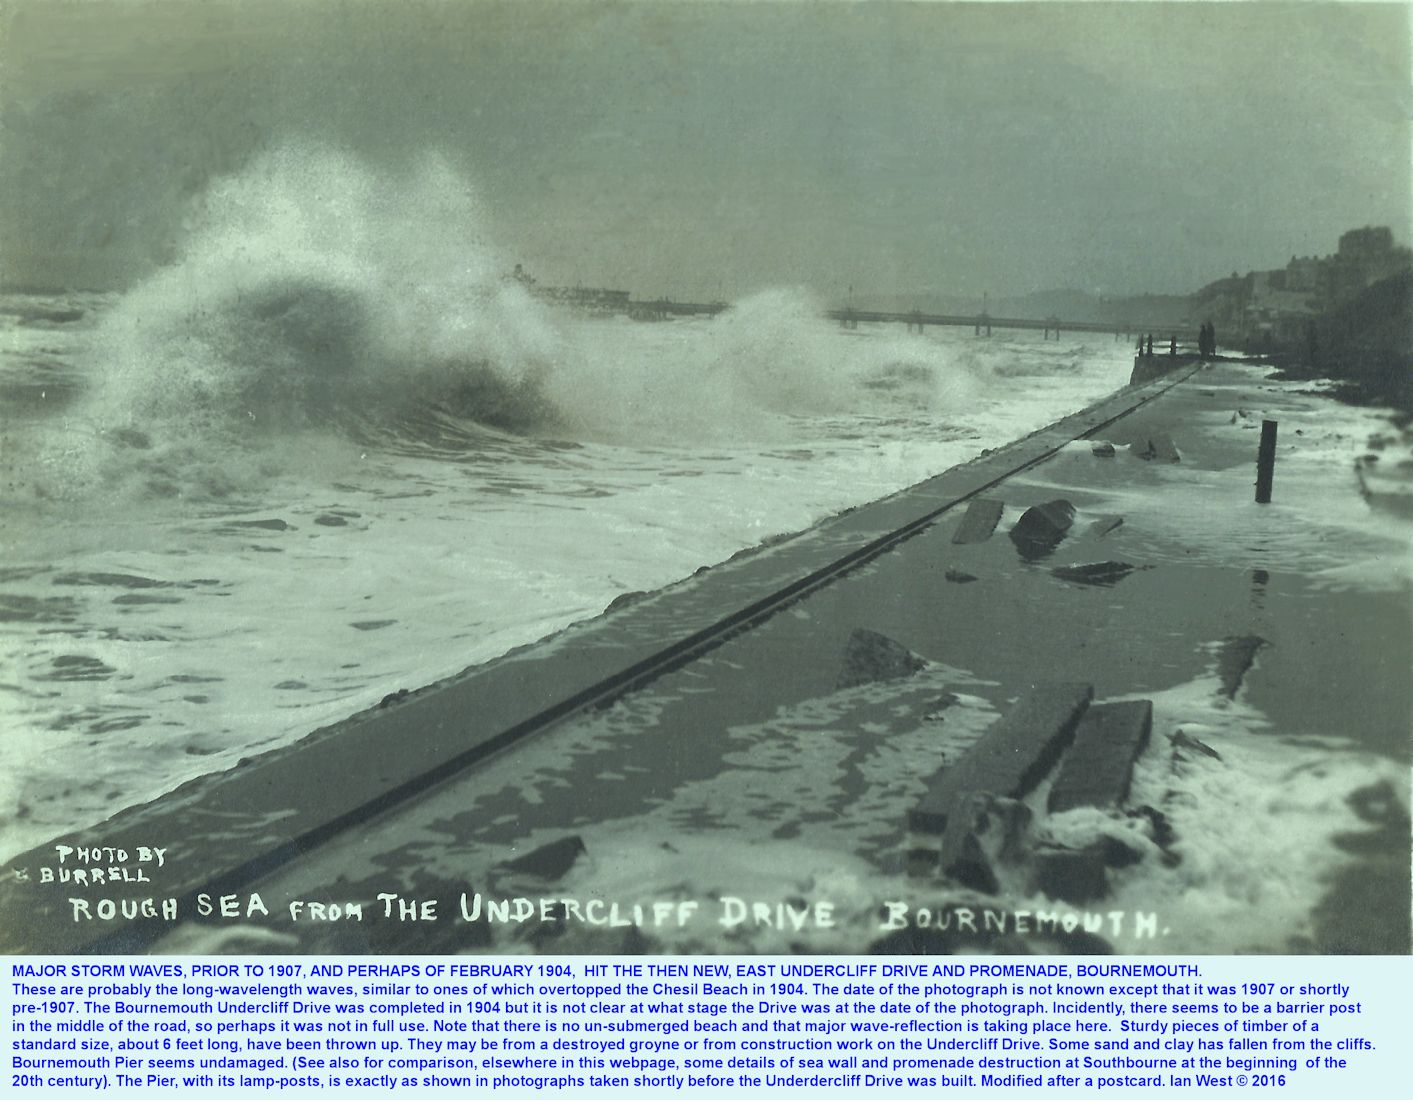 A major storm, with wave reflection, hits the new promenade, just east of Bournemouth Pier, Dorset, in about 1904